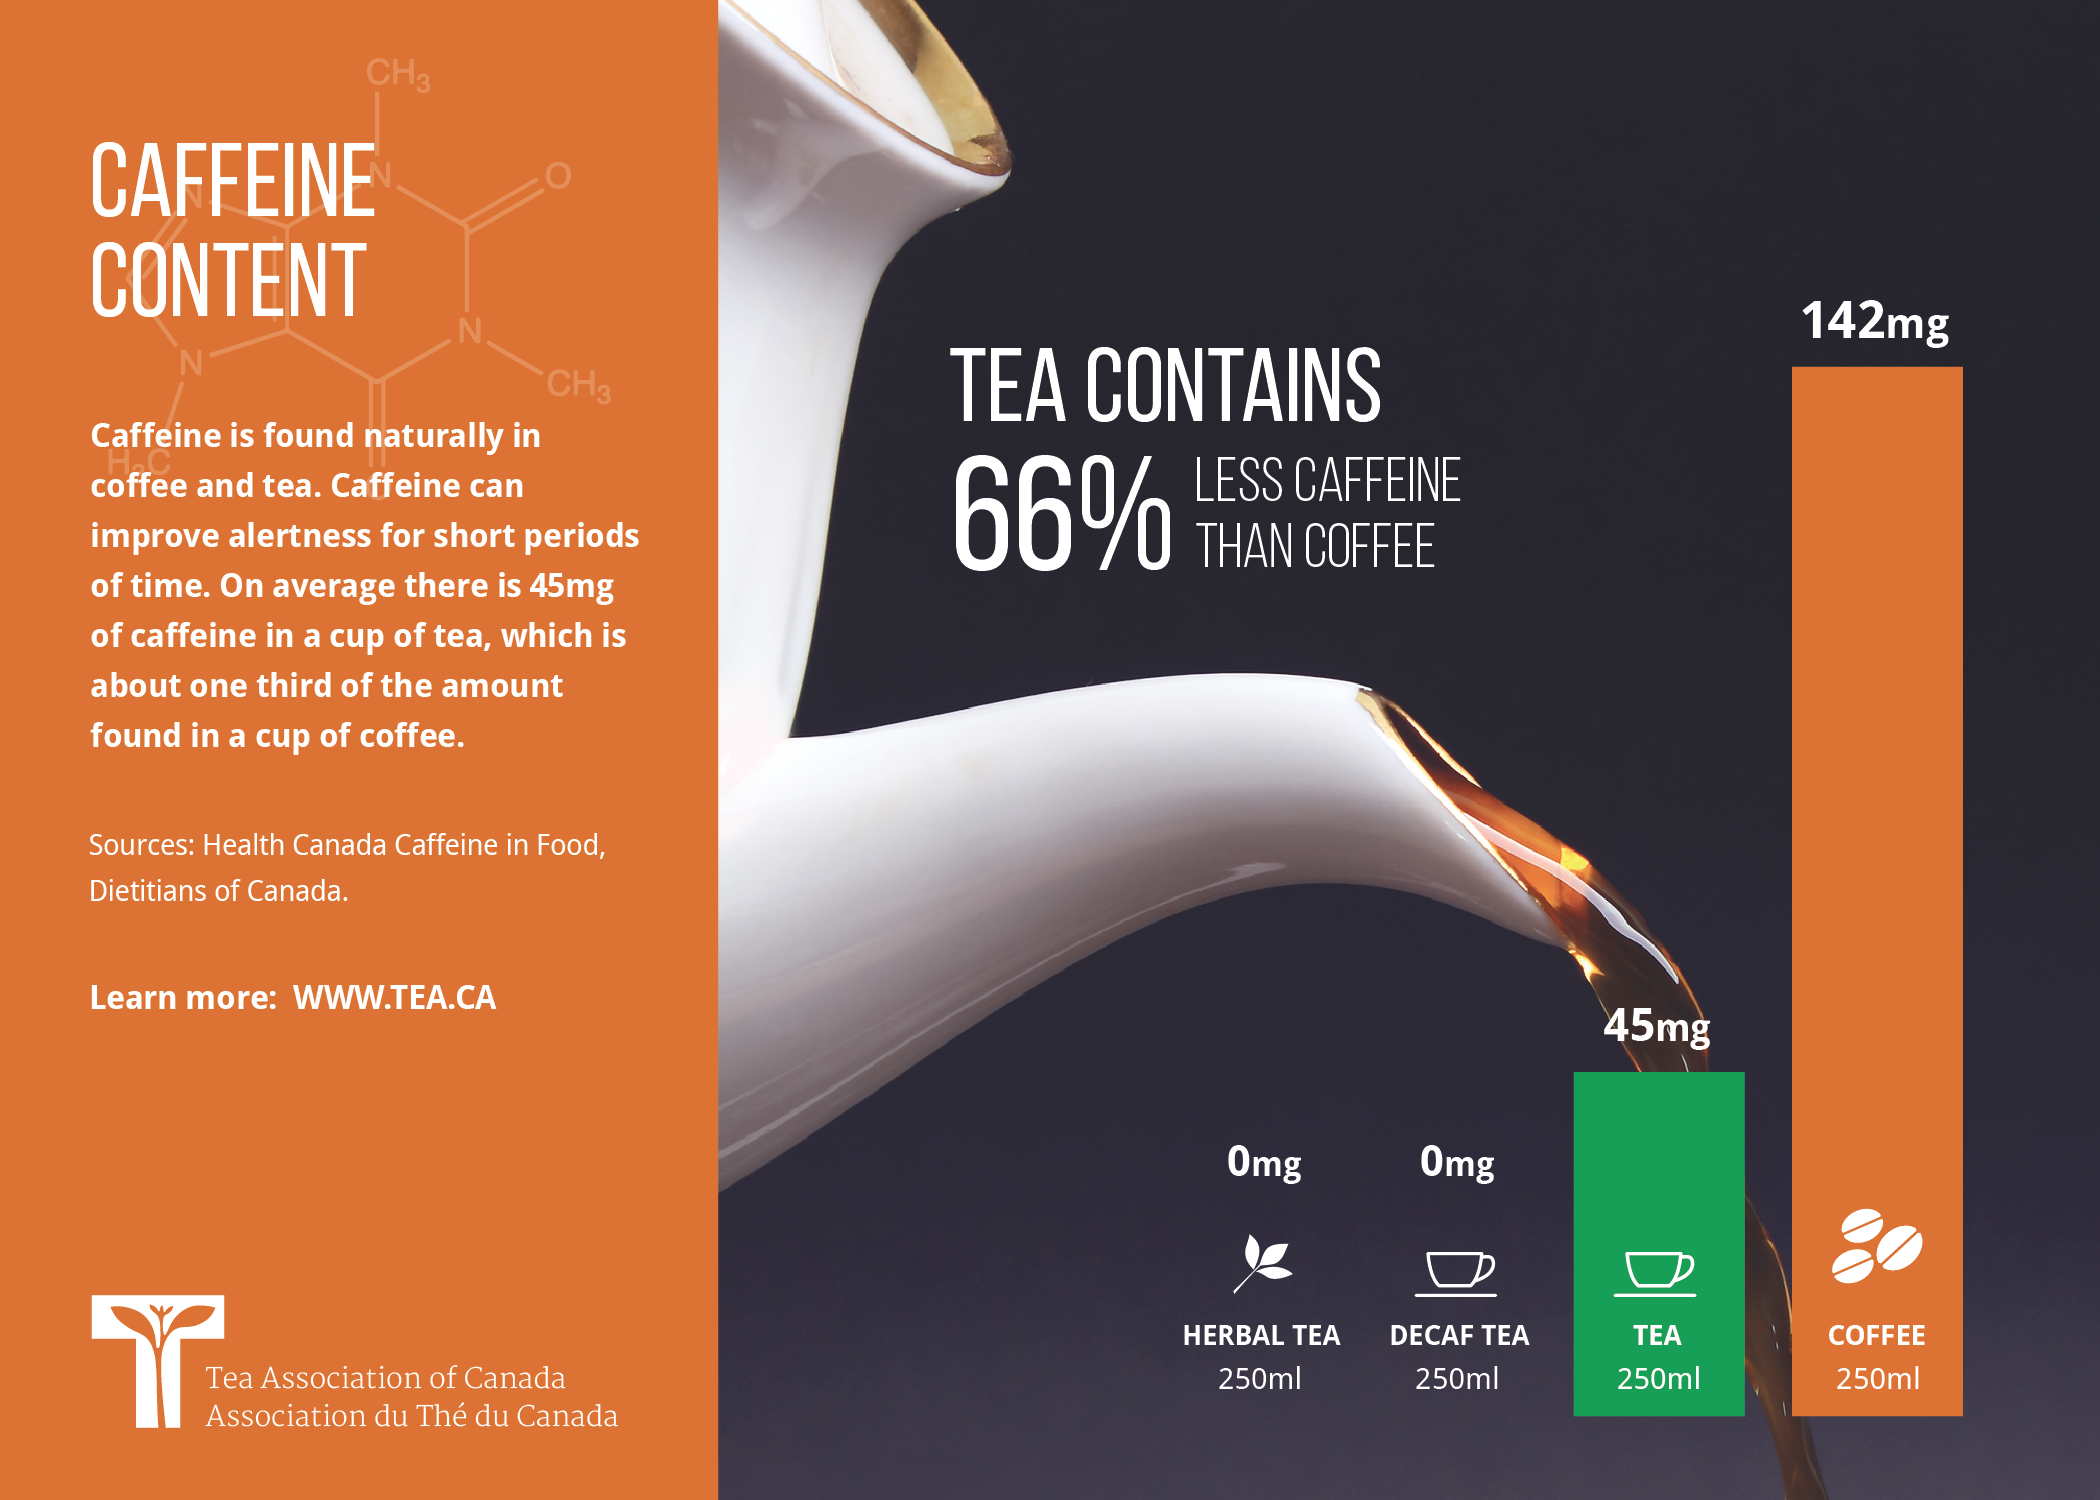 Does Green Tea Extract In Drinks Have Caffeine